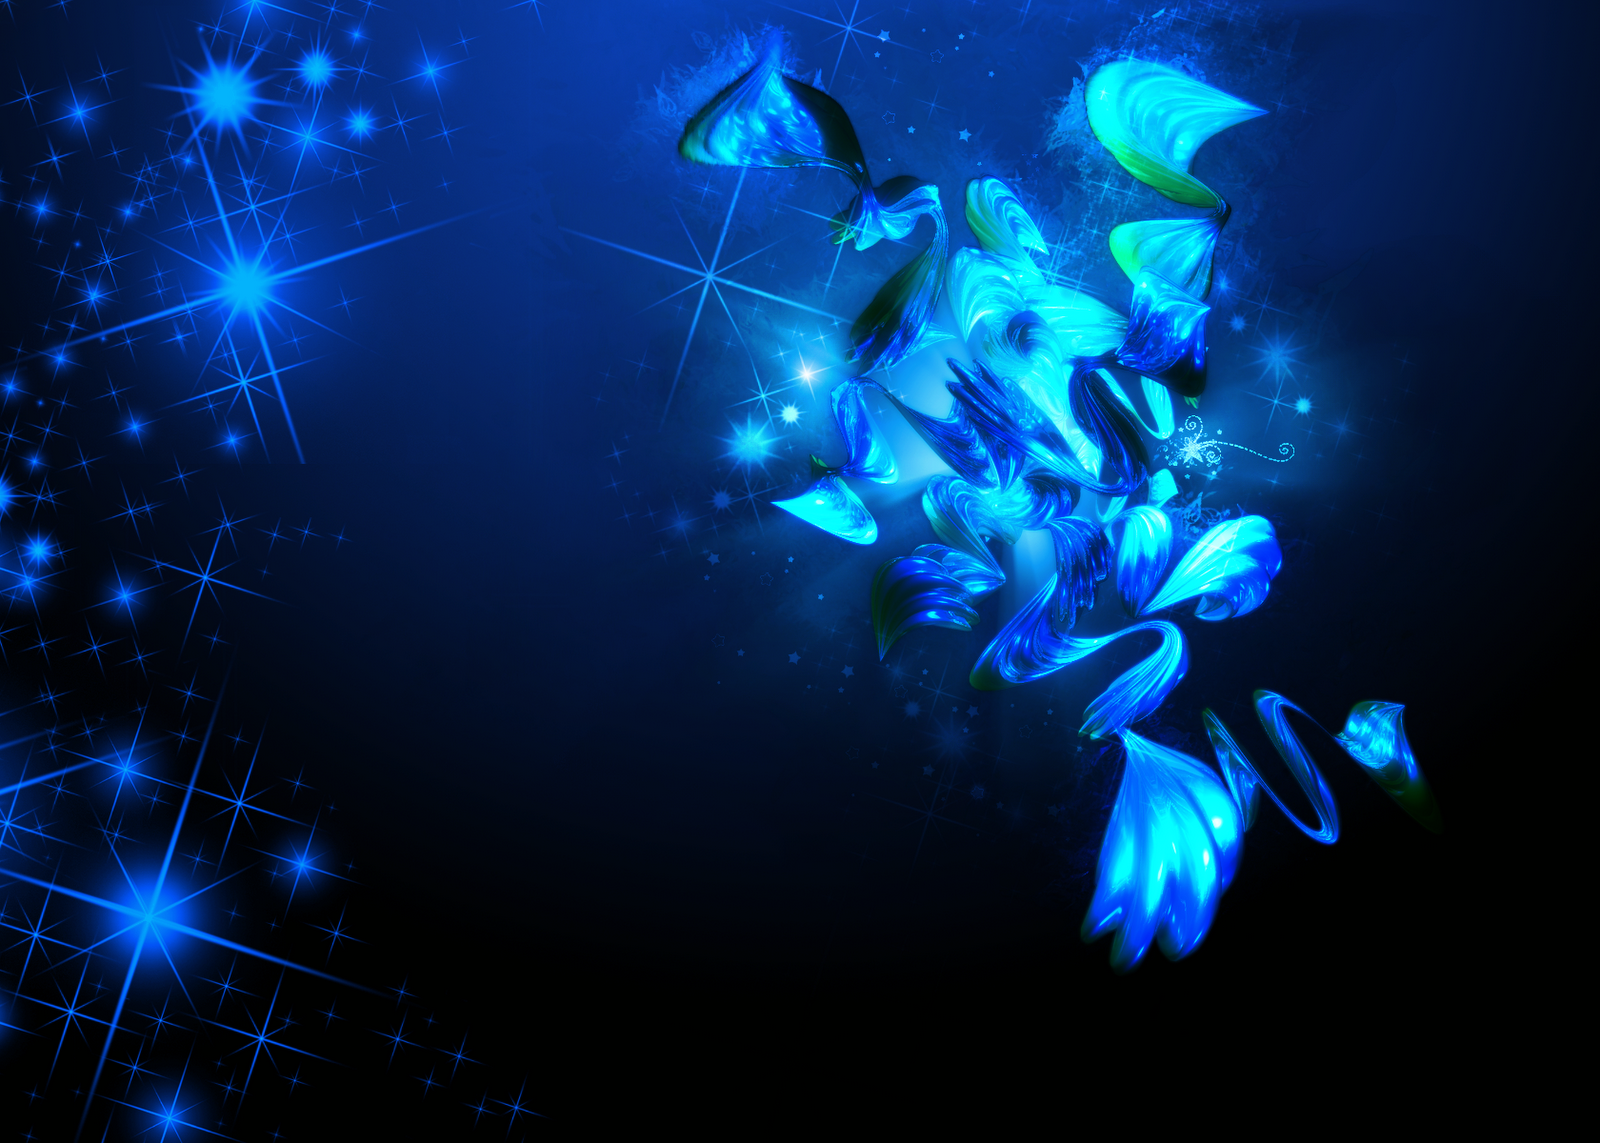 Black and blue hd wallpaper wallpapersafari for Blue wallpaper designs